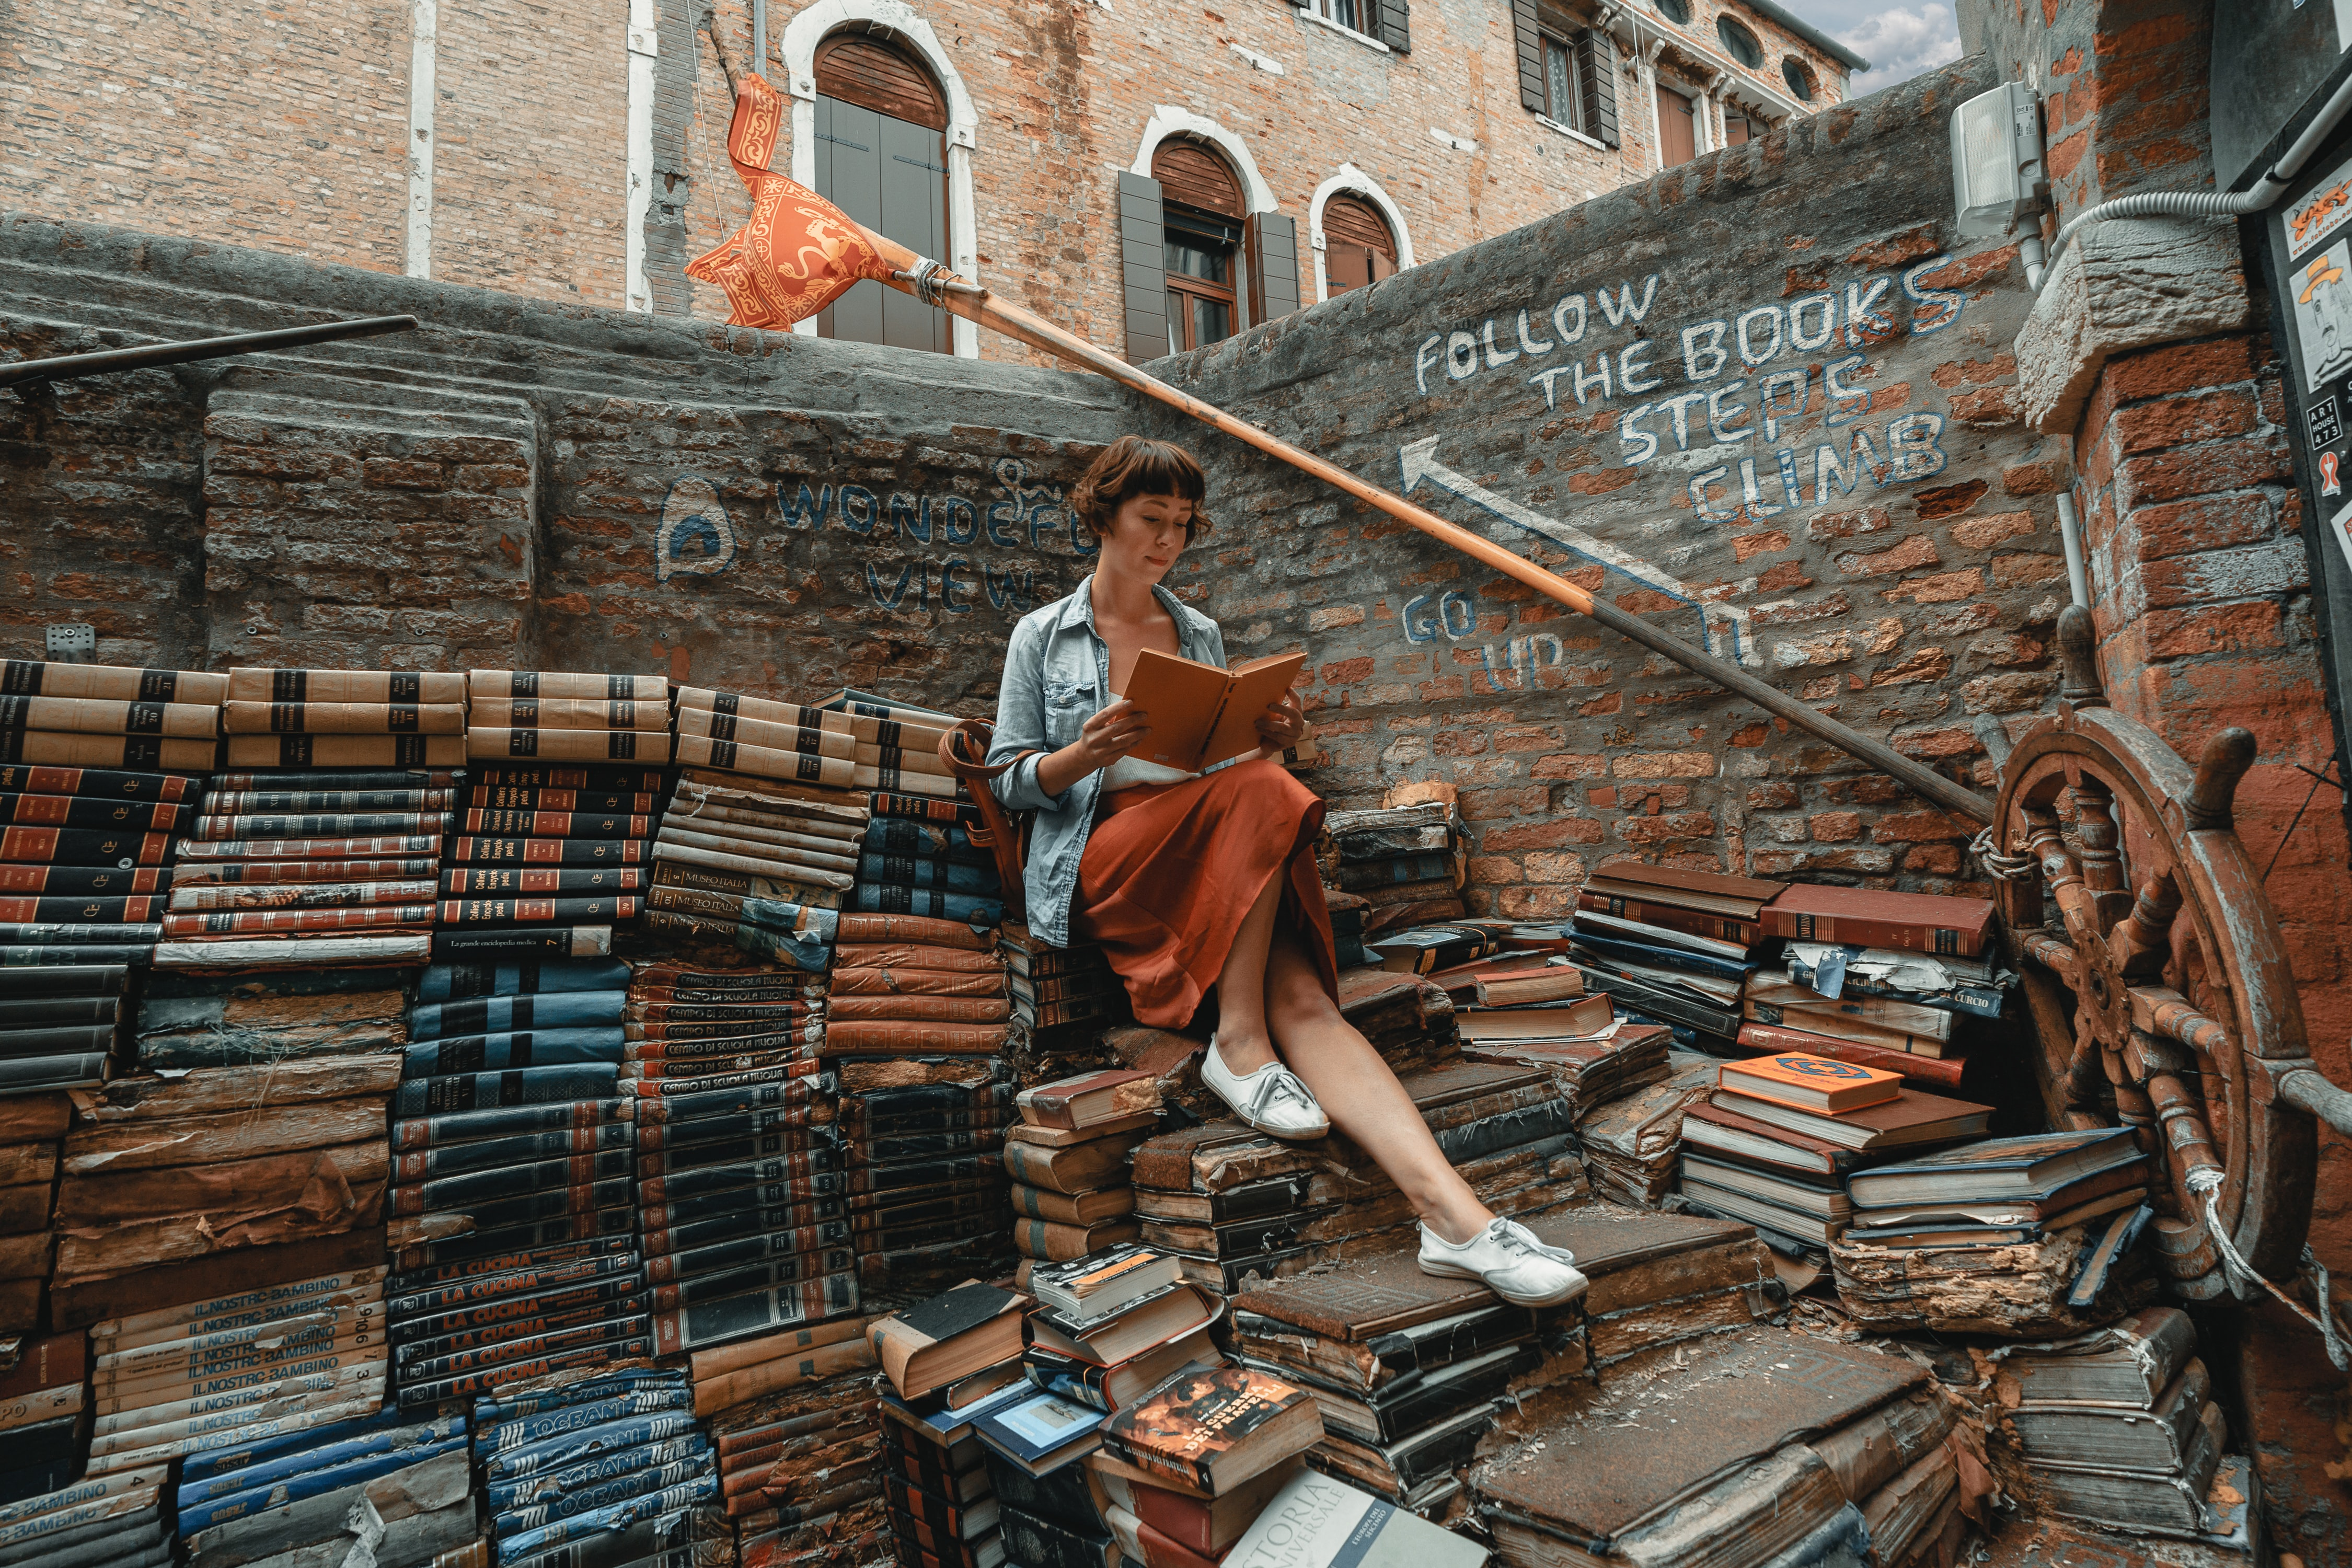 Venice Travel Guide 2021: What To Do | Budget Tips | Day Trips & More